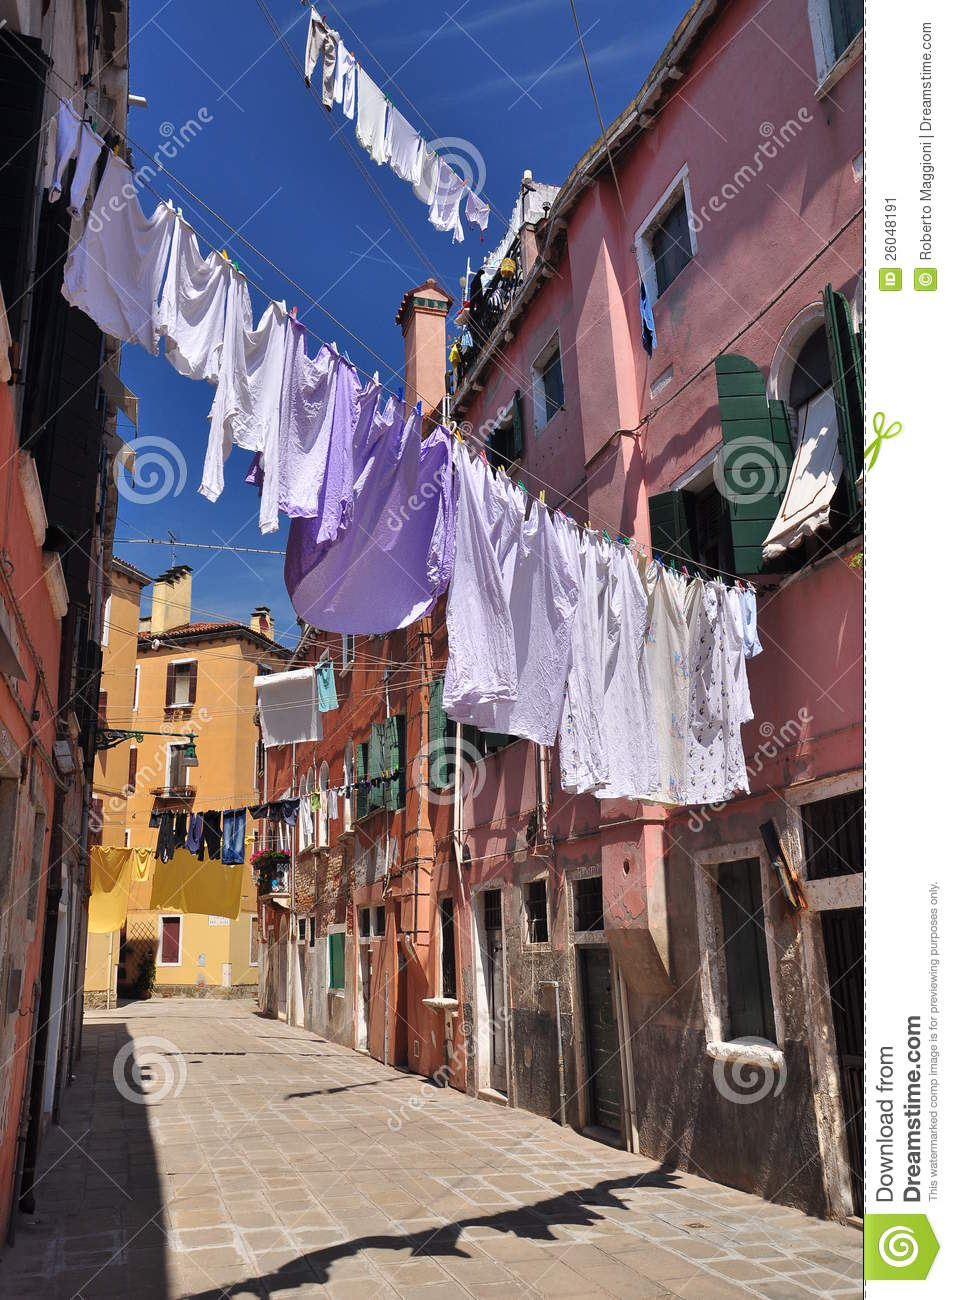 Clothes Line Hanging Above An Alley In Venice Stock Image  Image 26048191